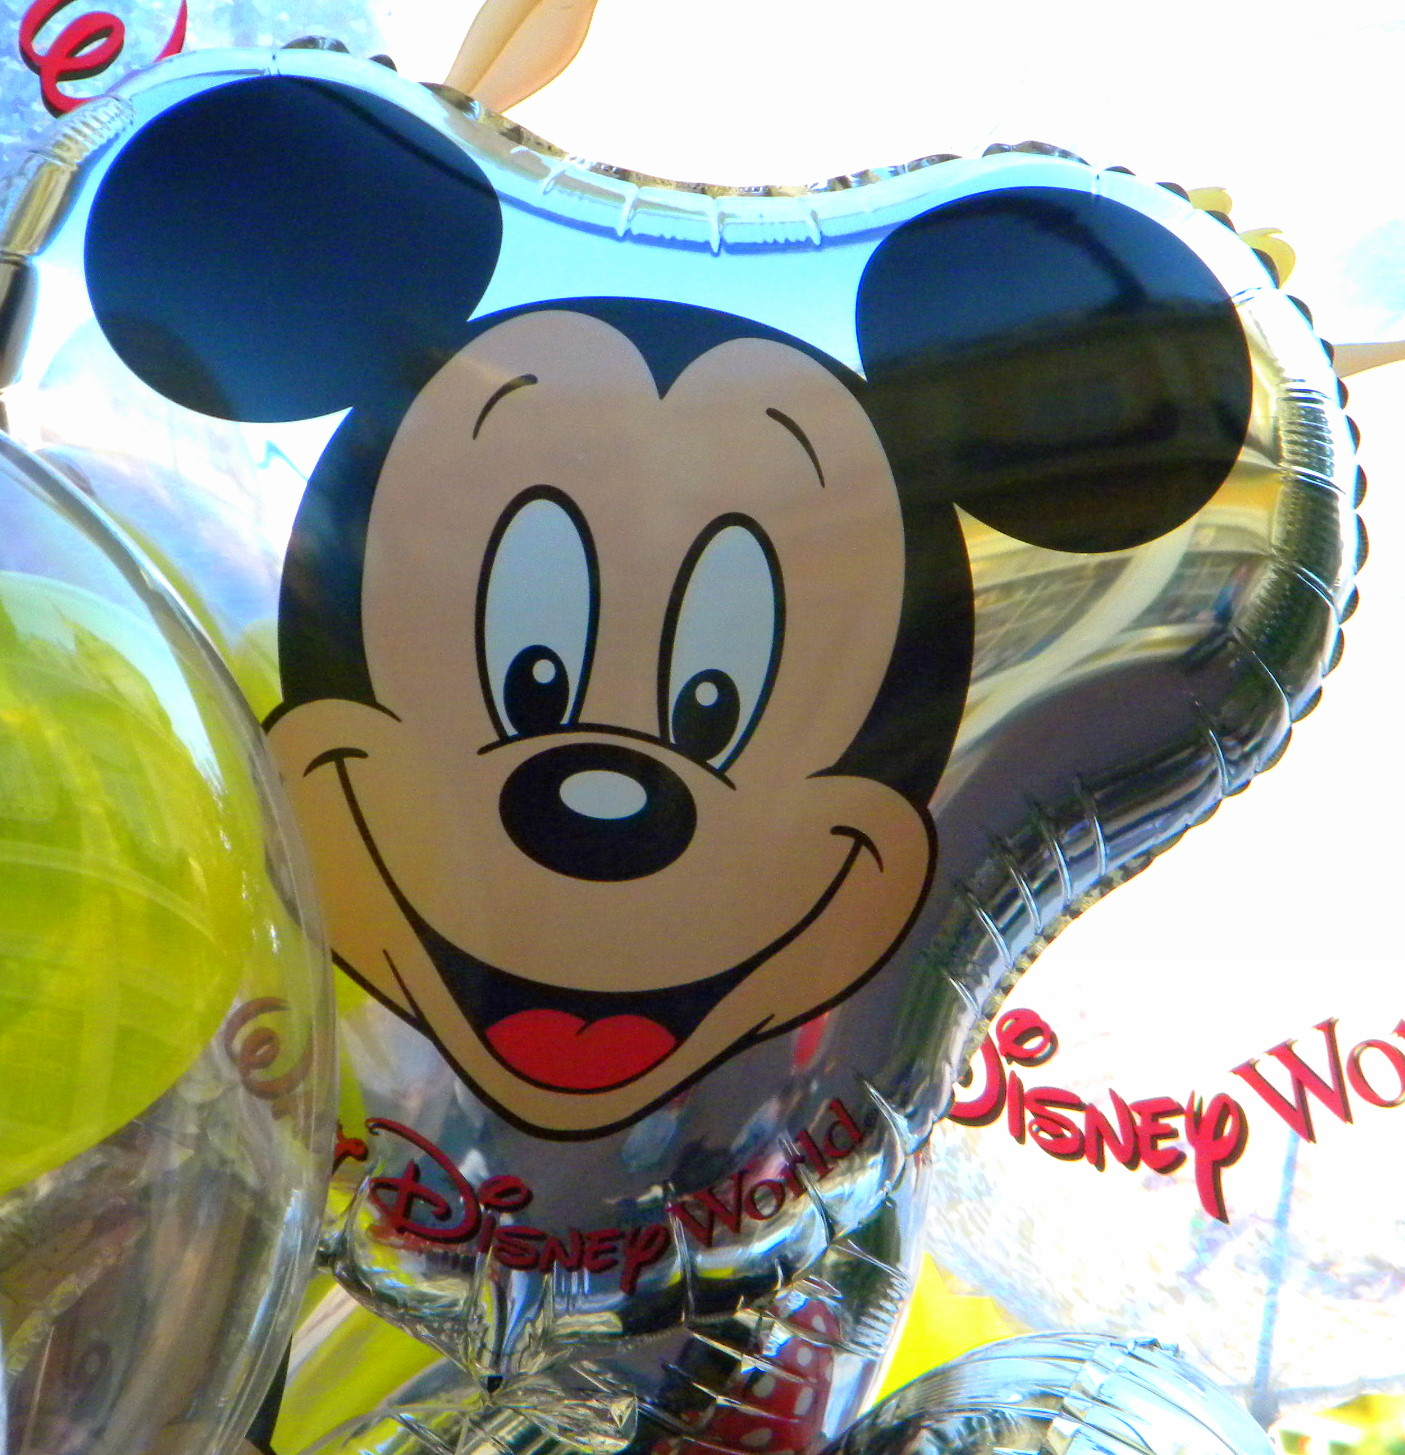 Fabulous Ideas to Celebrate a Kid's Birthday at Walt Disney World